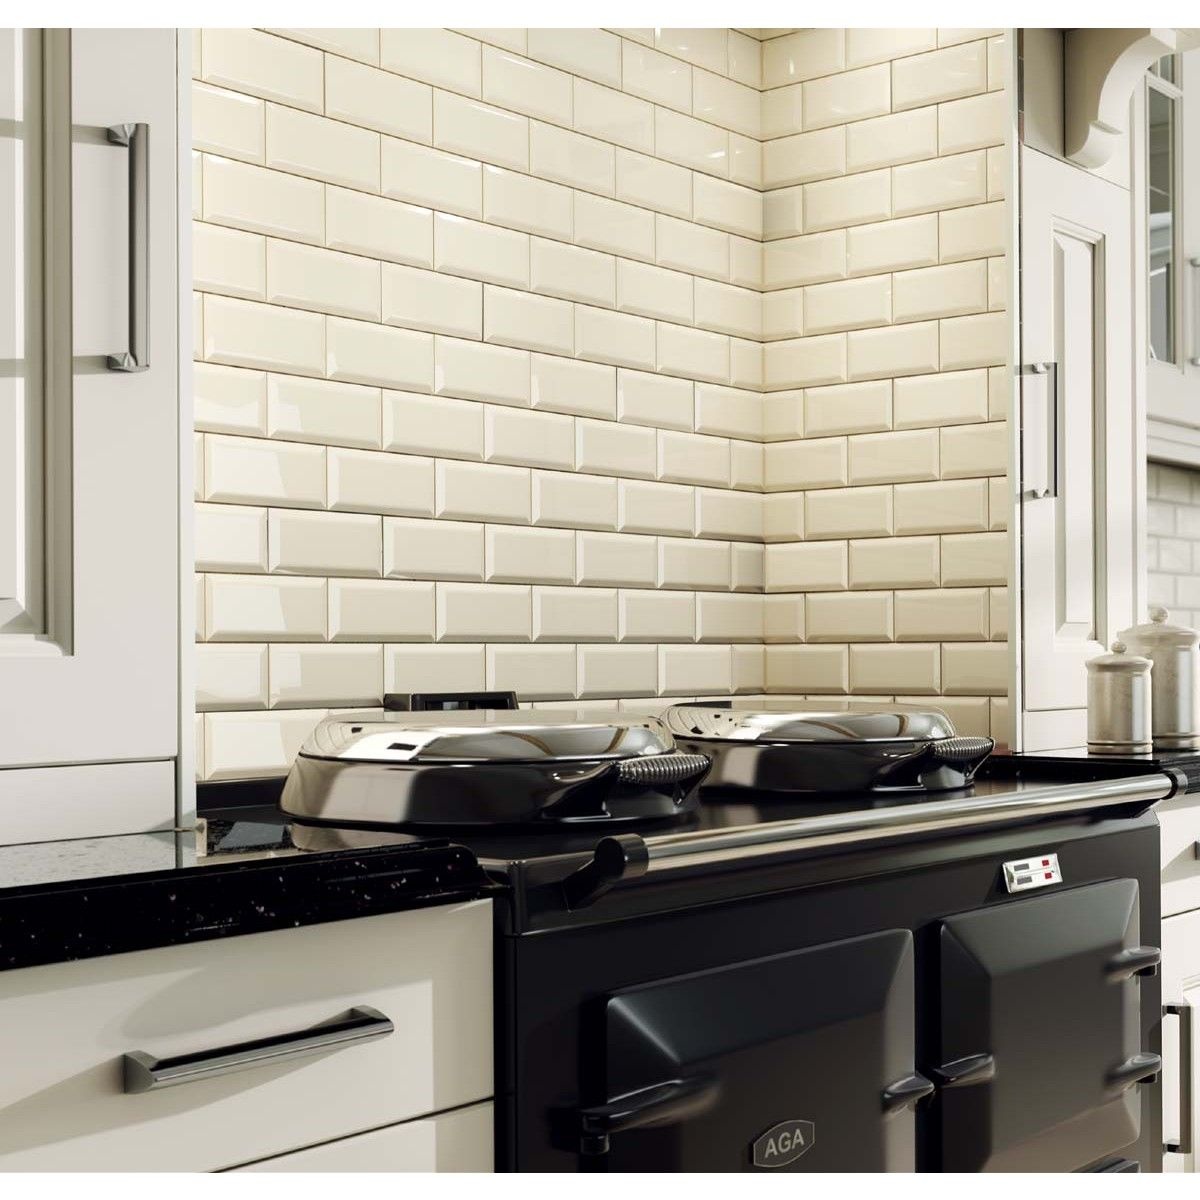 Metro Cream Wall Tiles - 200mm x 100mm Kitchen | kombuis muur teels ...